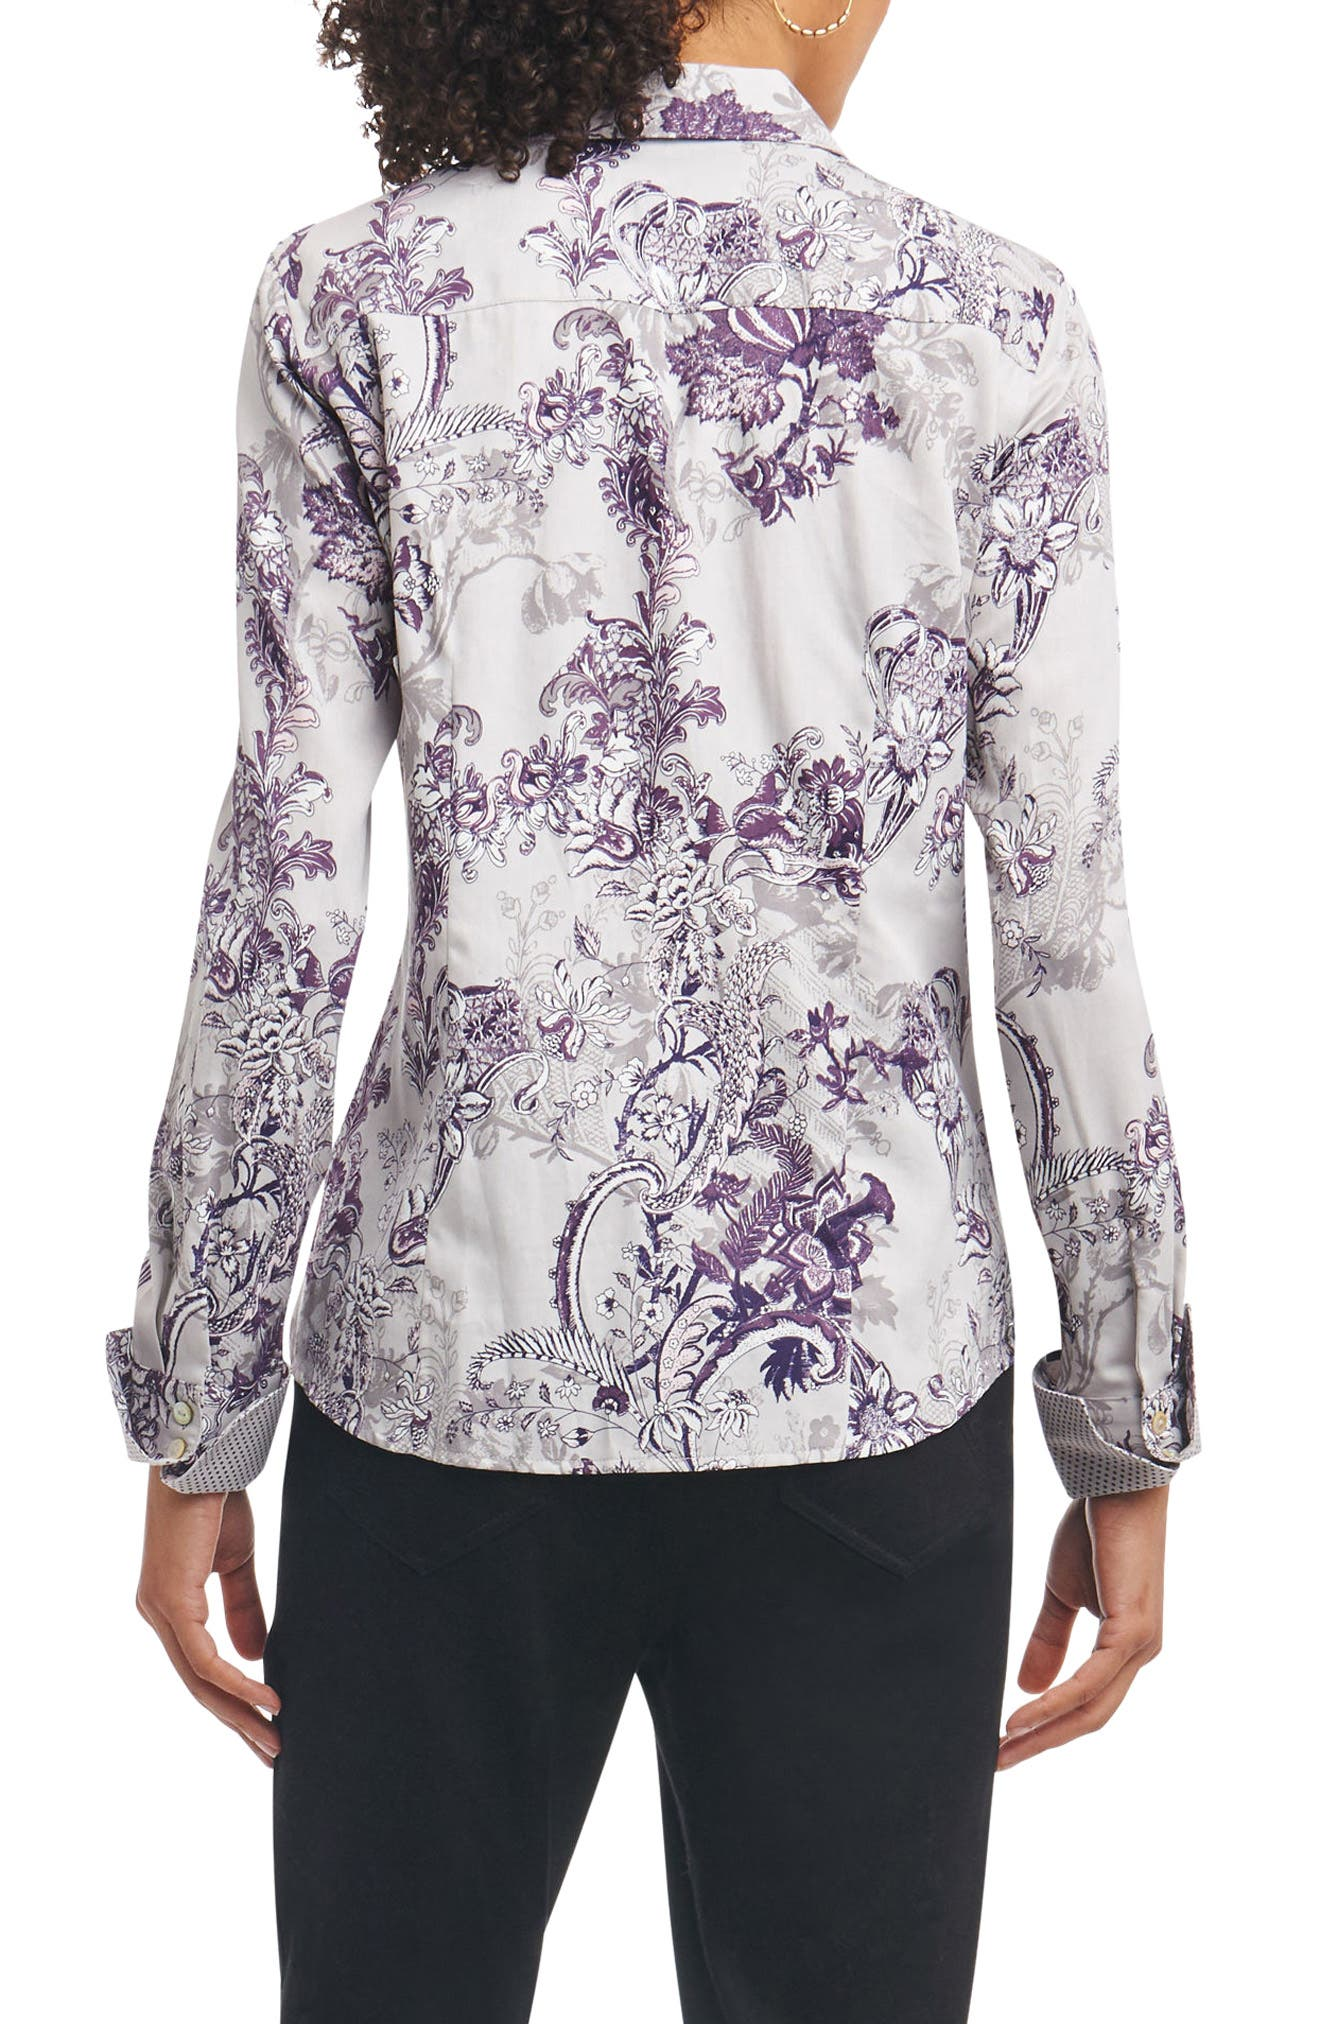 Lauren Floral Tapestry Wrinkle Free Shirt,                             Alternate thumbnail 2, color,                             037